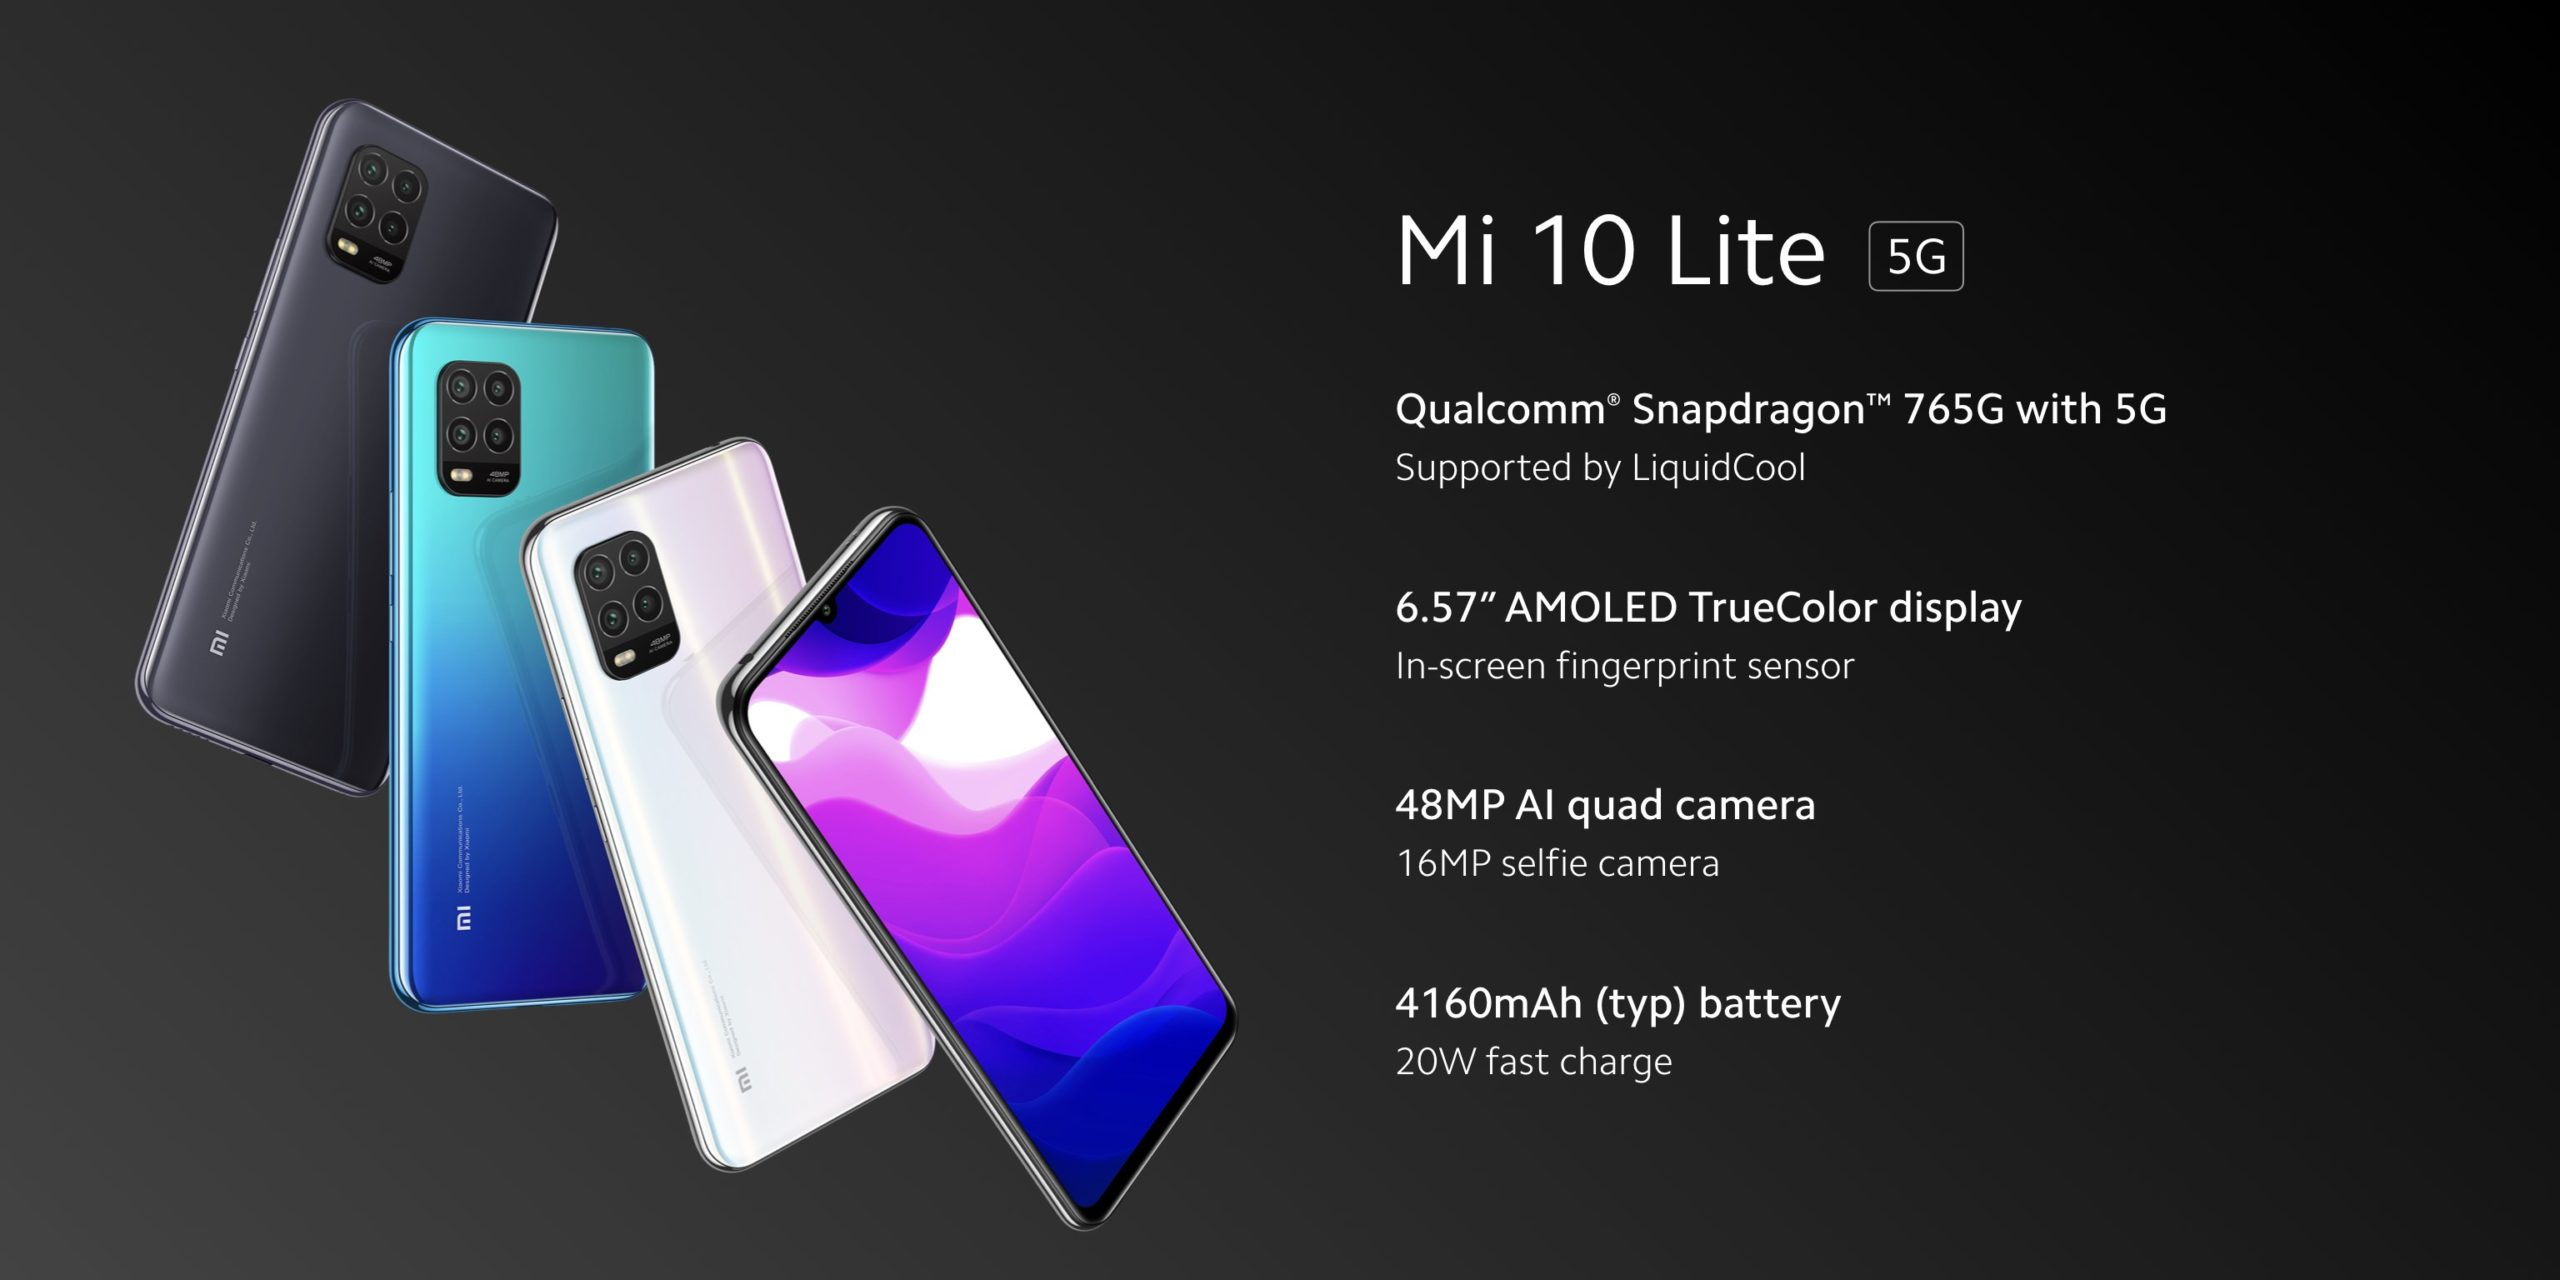 Xiaomi Mi 10 Lite 5G announced in Europe with a Snapdragon 765G